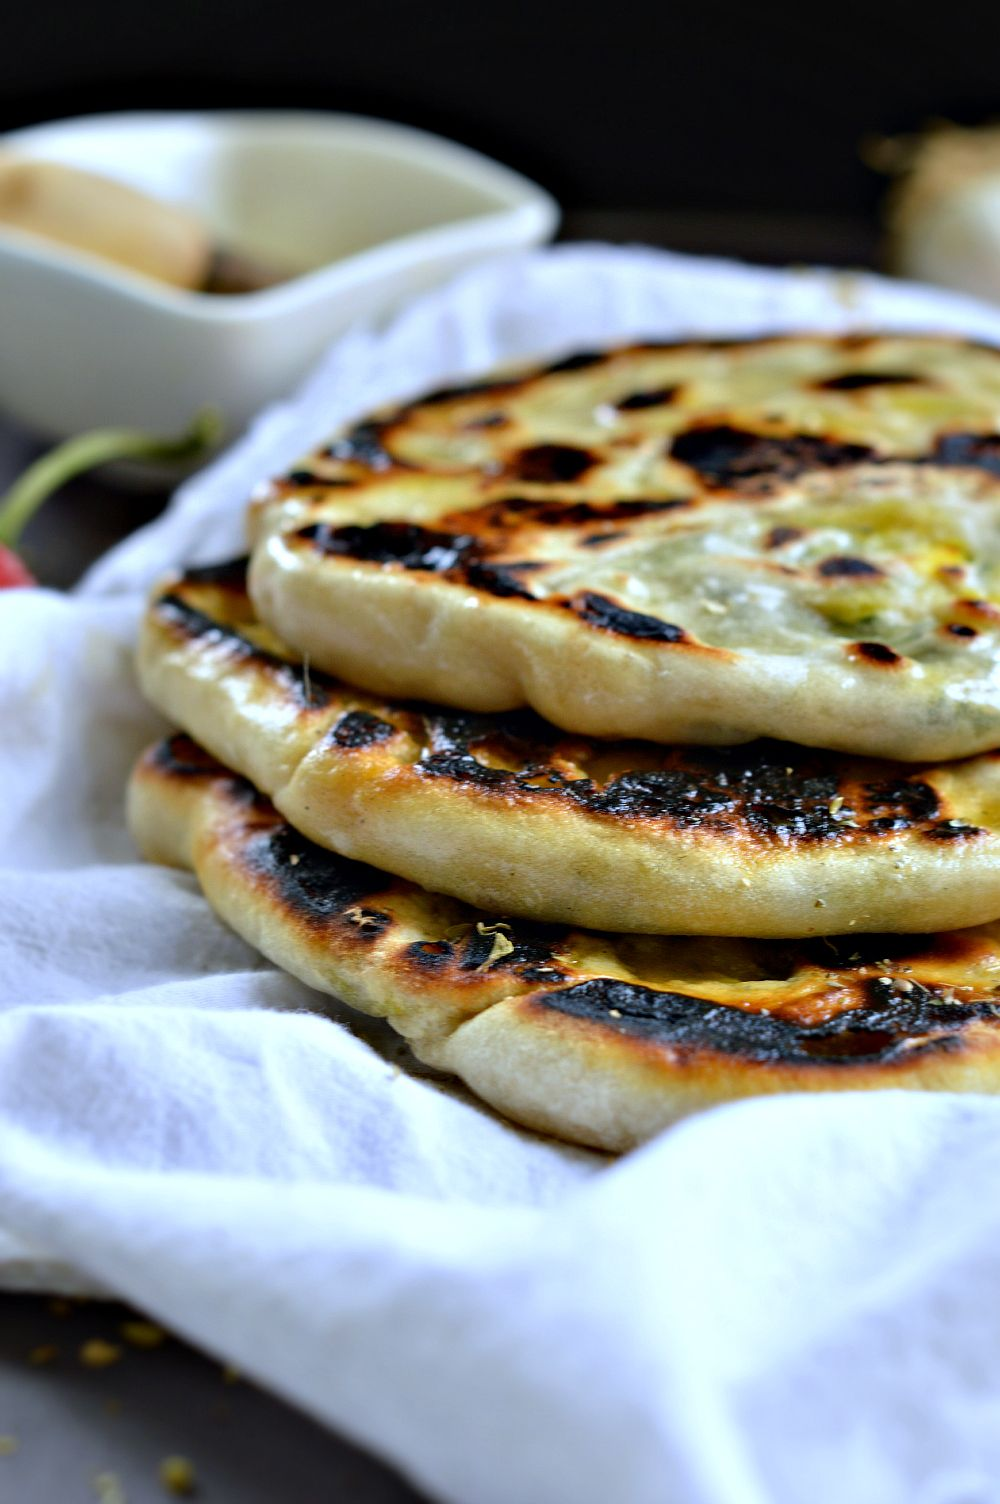 Aloo paratha recipe spelt flour stuffed bread and paratha recipes aloo paratha paratha recipesindian forumfinder Image collections